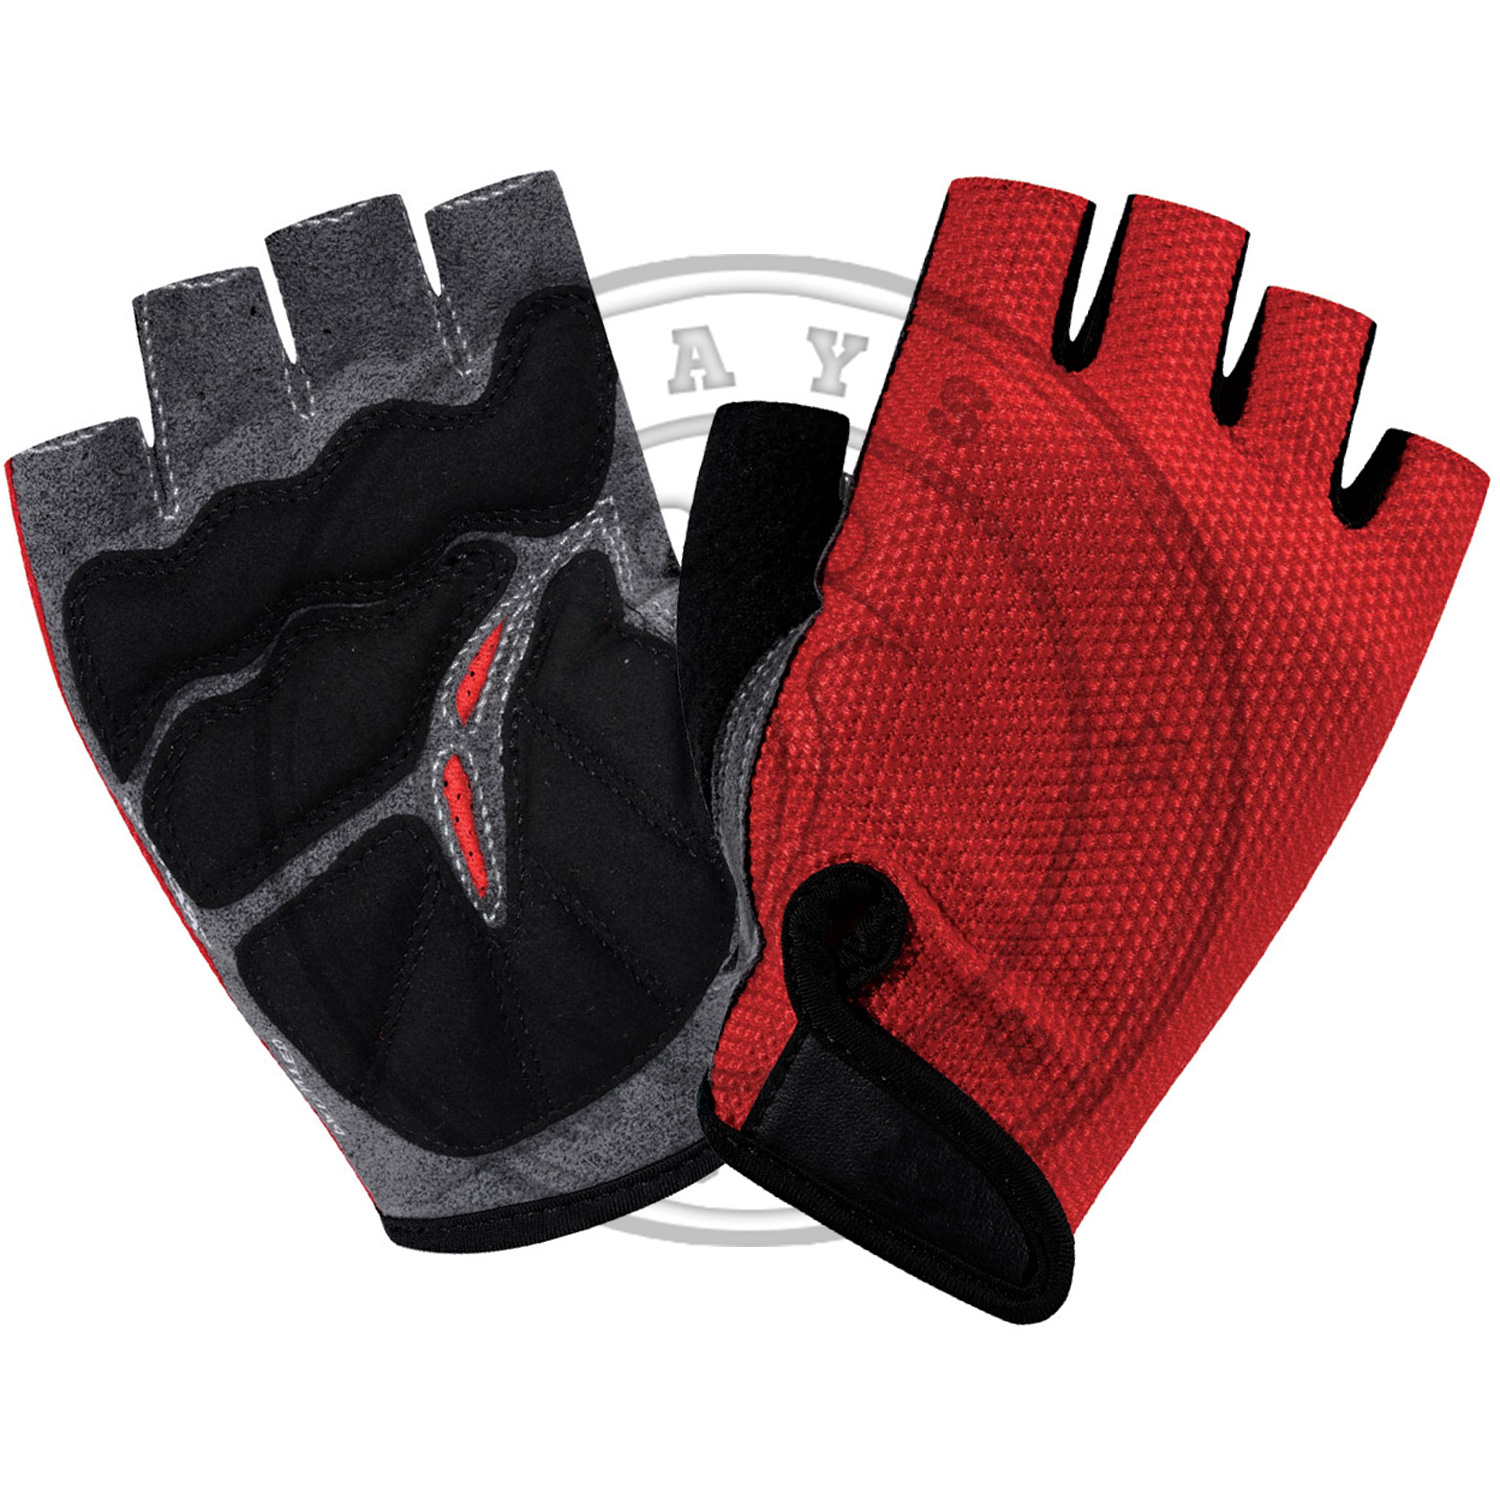 Cycling Summer Glove